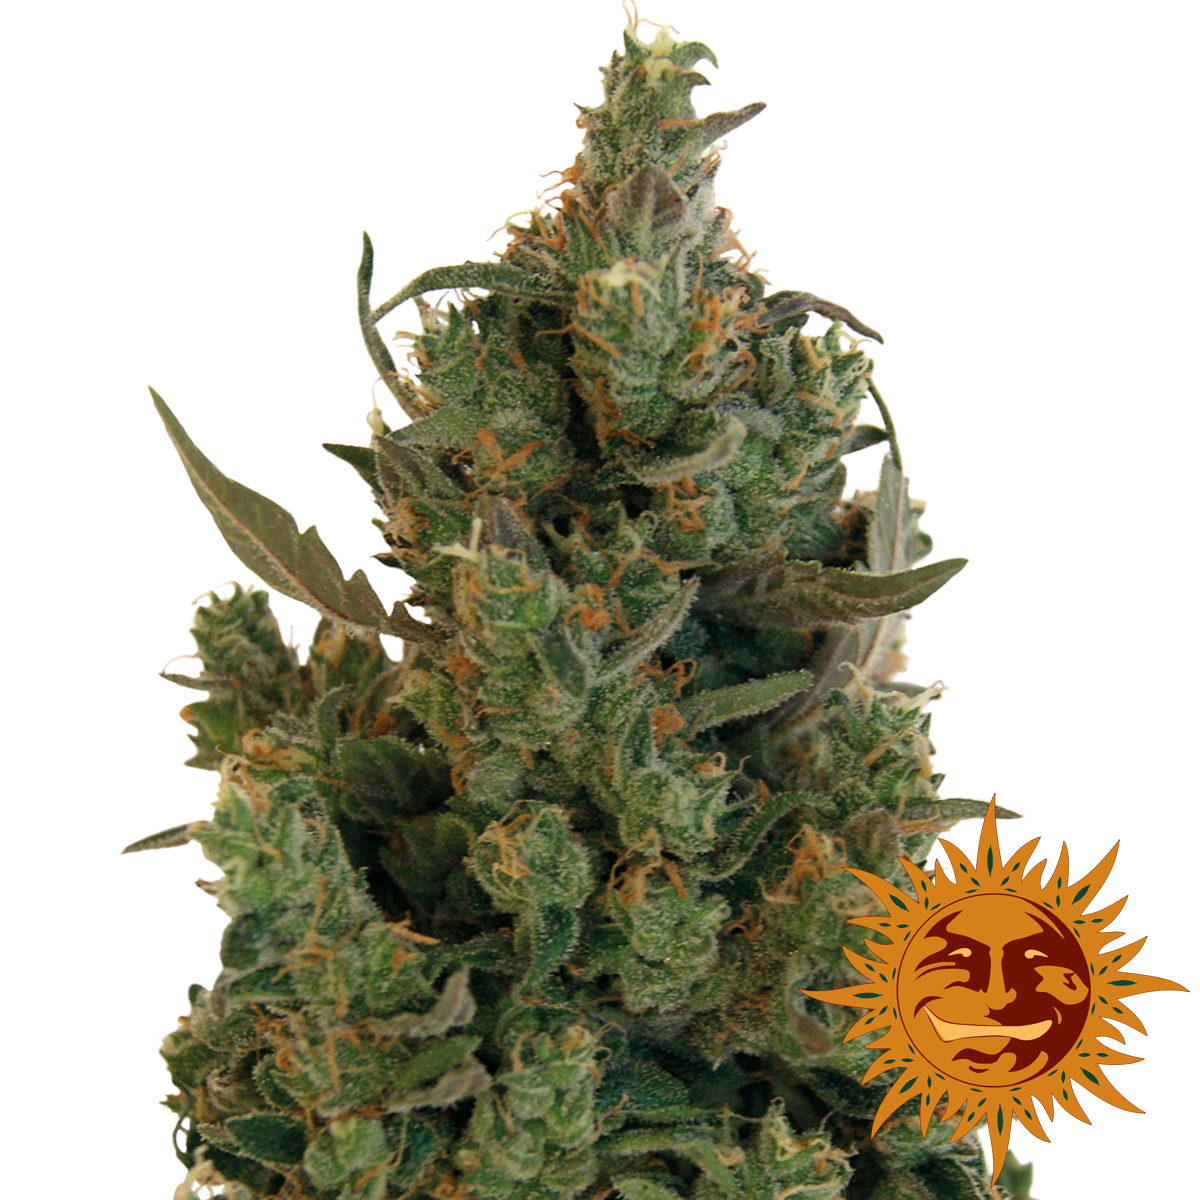 Buy Blue Cheese Feminised from Barneys Farm at Discount Cannabis Seeds